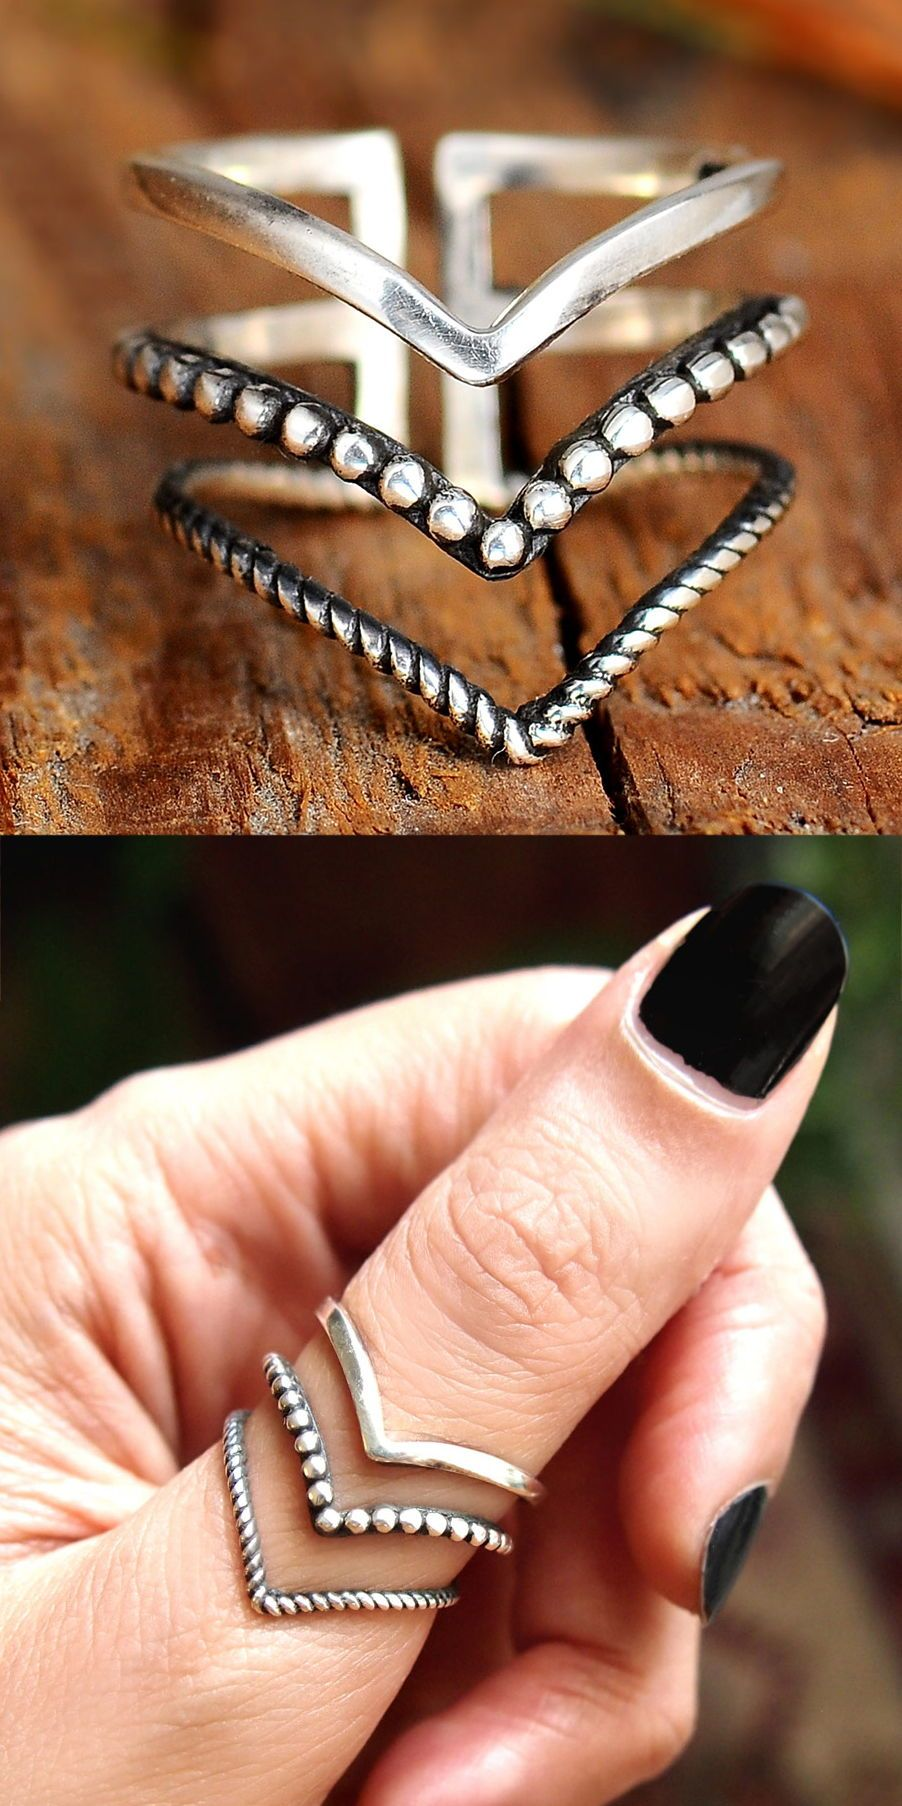 chevron ring, Thumb rings, adjustable ring, long ring, sterling silver rings for women, boho rings, bohemian jewelry, geometric jewelry, triangle ring, handmade silver jewelry, beach jewelry, jewelry handmade, best jewelry brands, Statement rings, Best rings for big hands, hippy jewelry, accessories rings, chunky ring